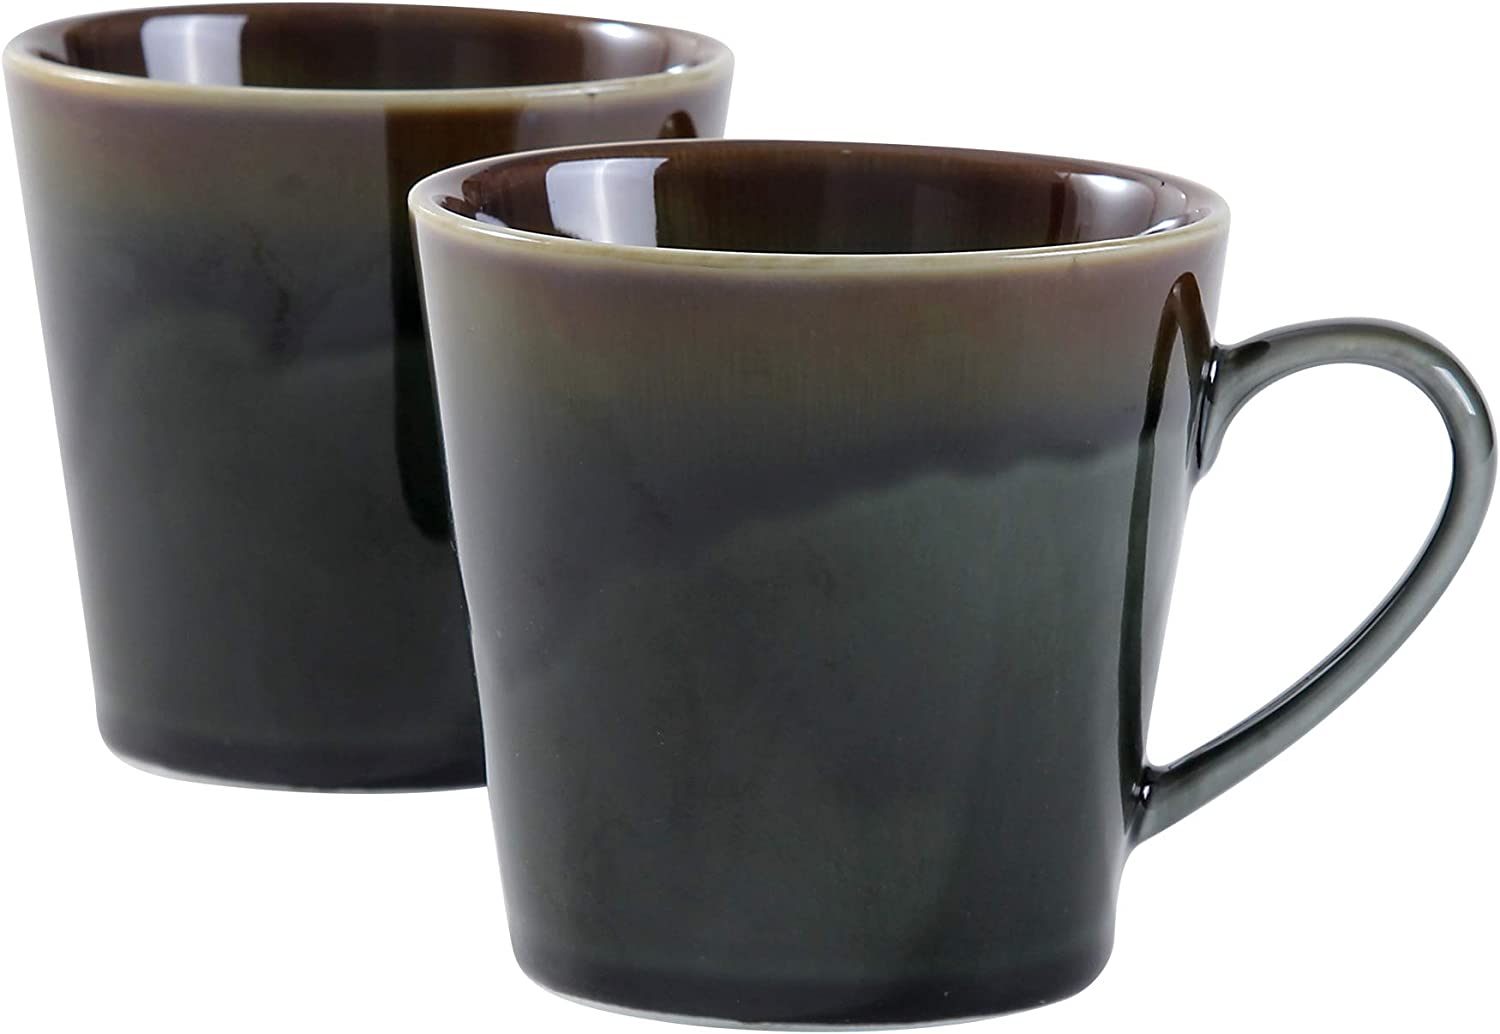 Uaral Ceramic Mugs Office and Home Porcelain Cups For Coffee Tea,Cappuccino,Cocoa 12oz, Set of 2,Forest Green